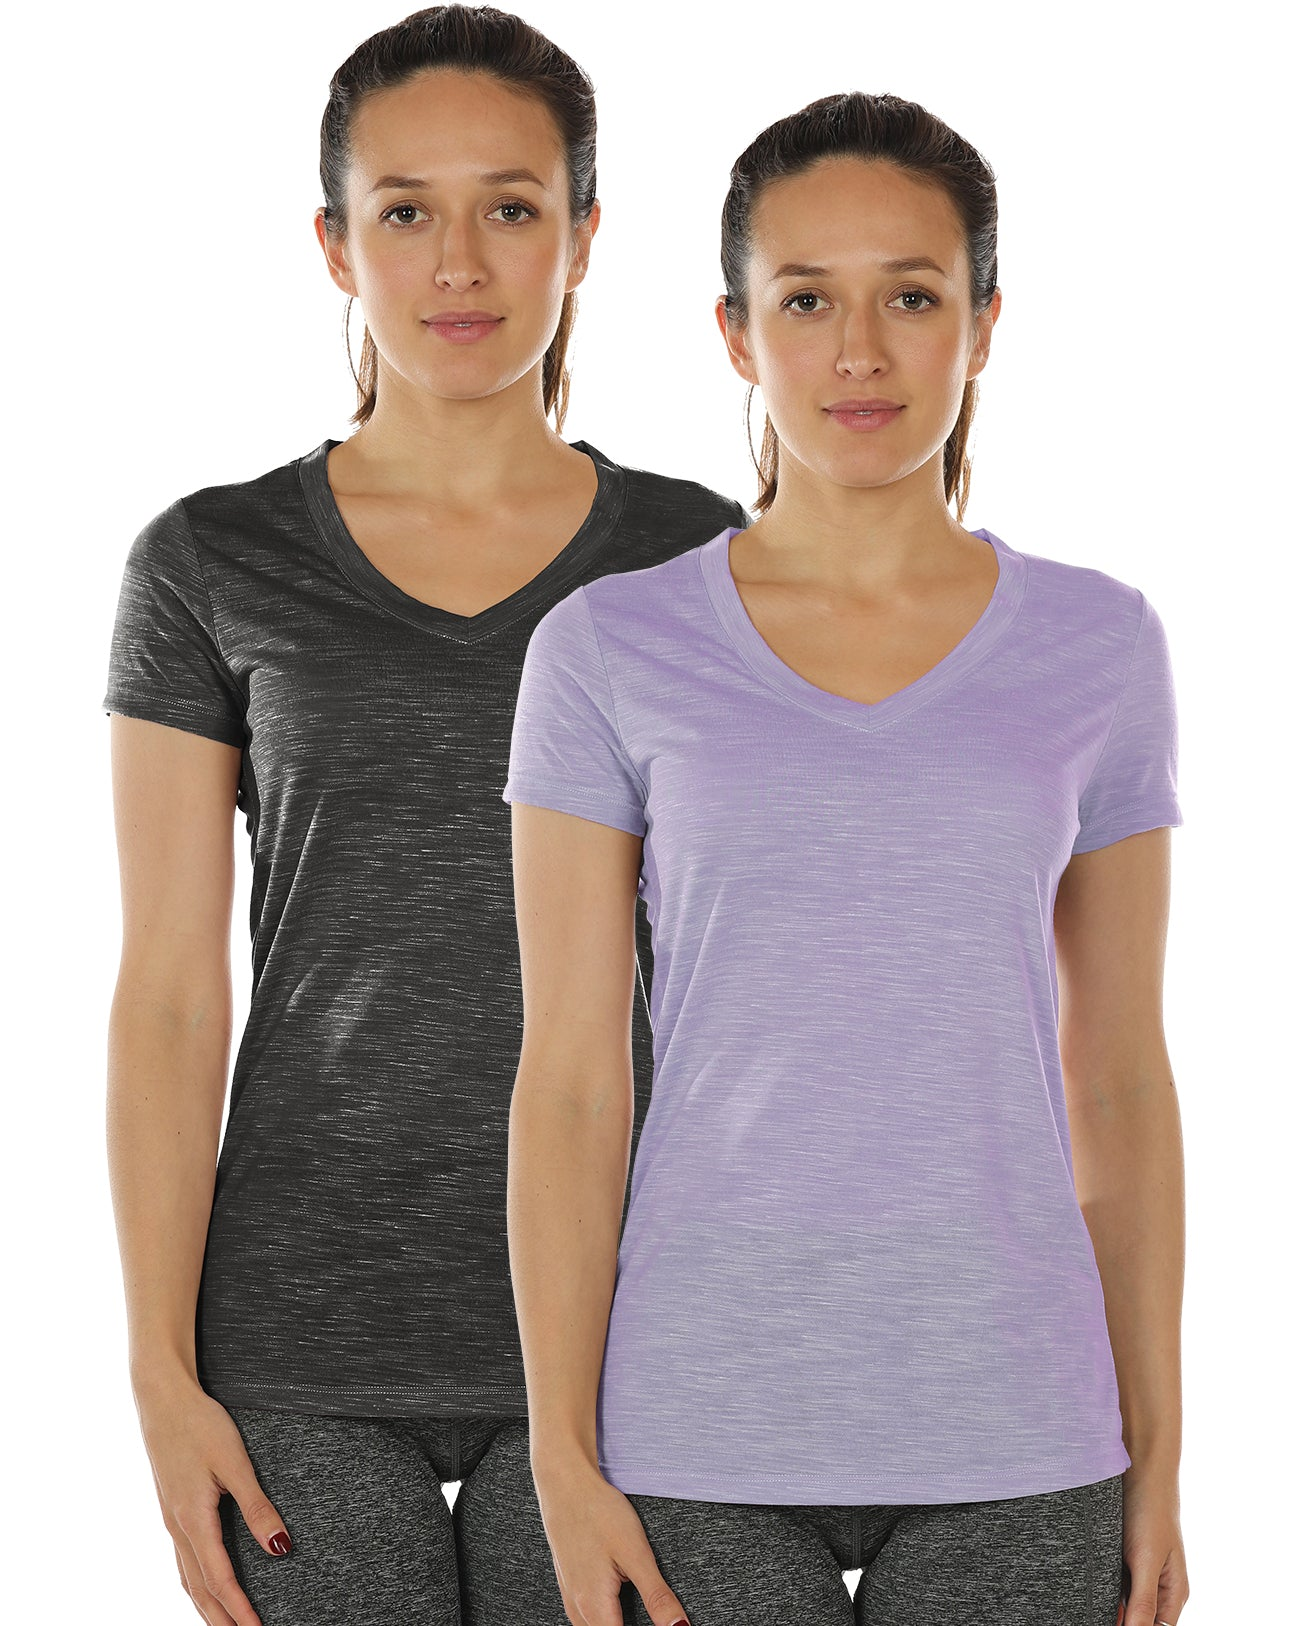 3e6a169970 icyzone Workout Shirts for Women - Yoga Tops Activewear Gym Shirts Running  Fitness V-Neck